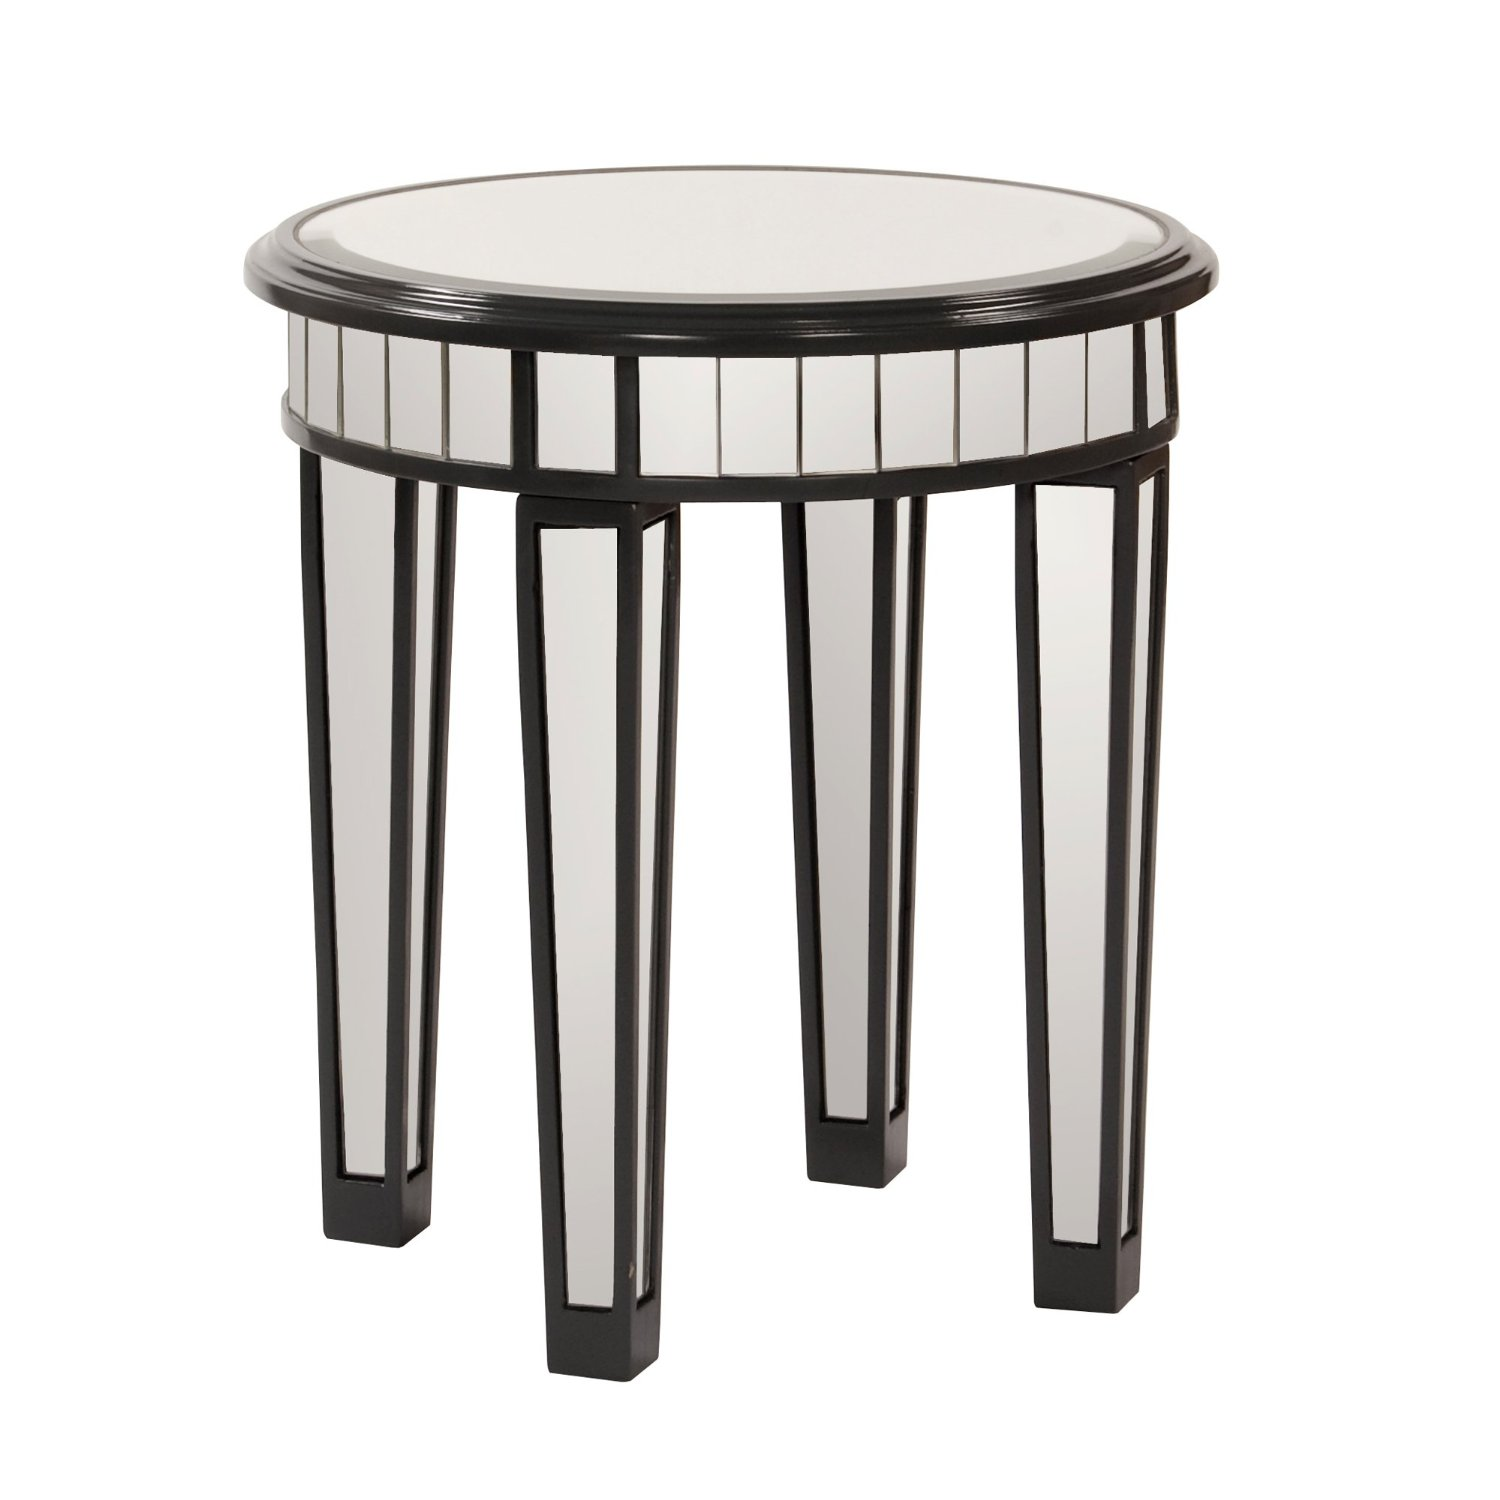 hammary impact small round accent table mirrored with legs and black wooden screw sectional sofas covers for outdoor tables dorm room ideas dining chairs red placemats tablecloths